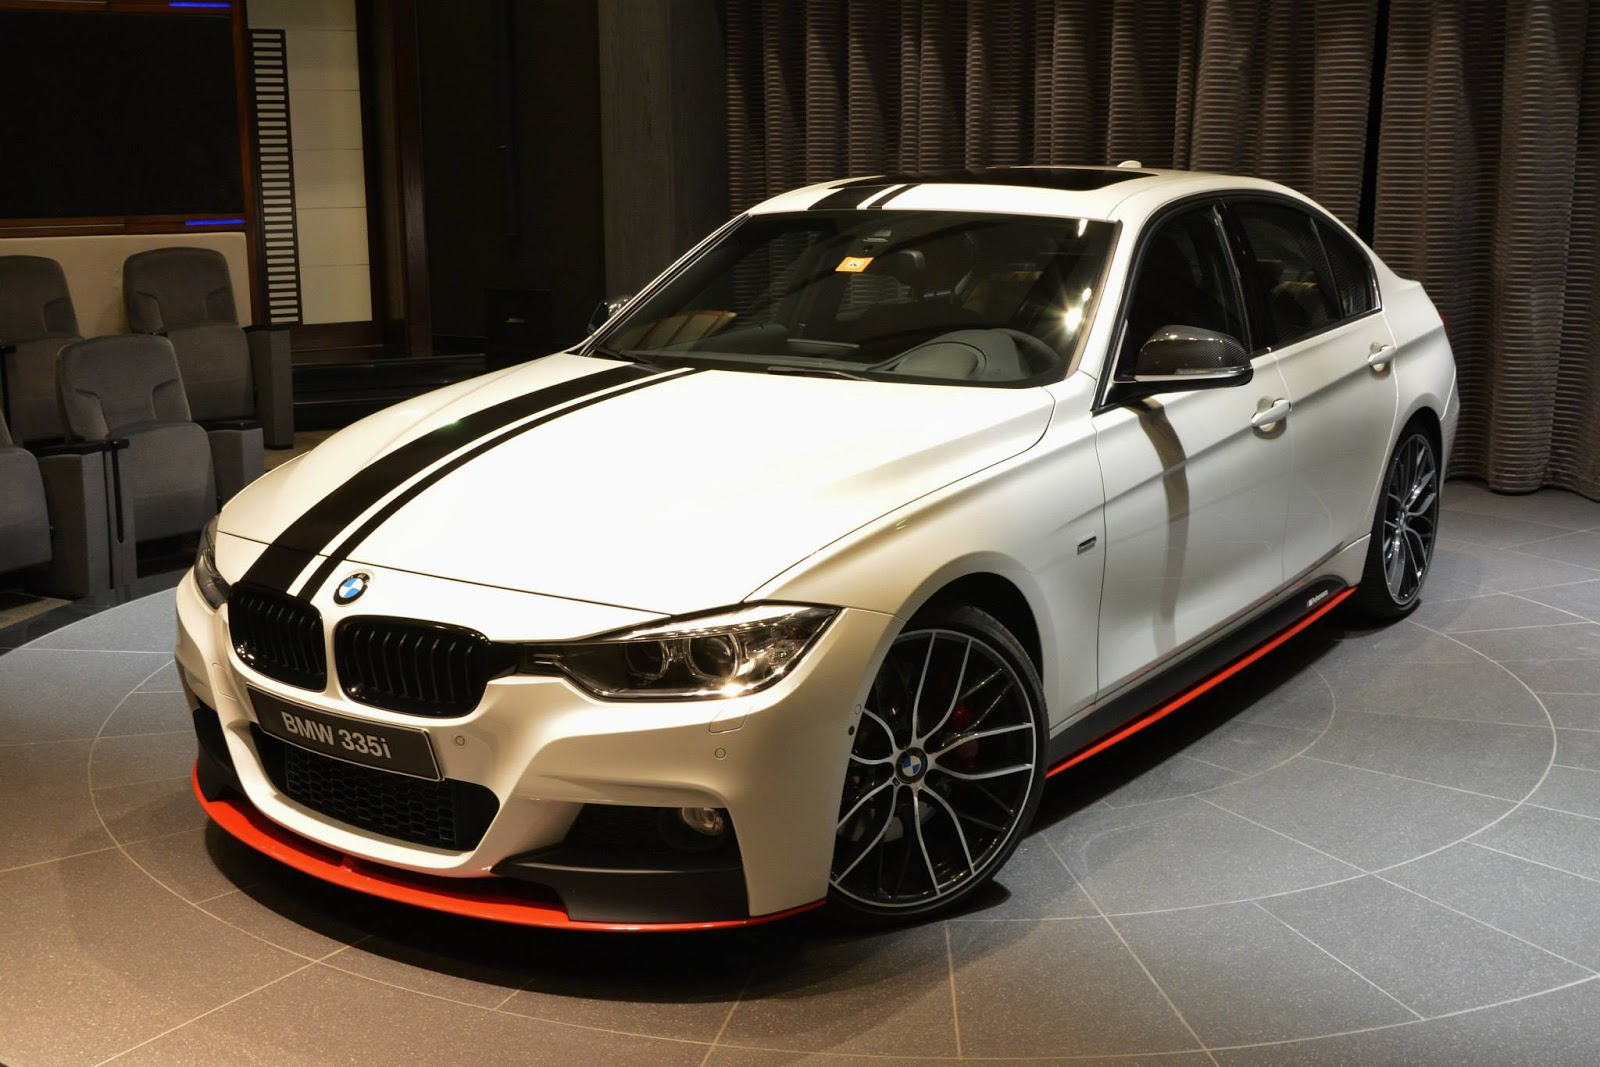 Check Out These Personalized Bmw 335i Alpina B6 X3 And 435i Cabrio In 69 Photos Carscoops